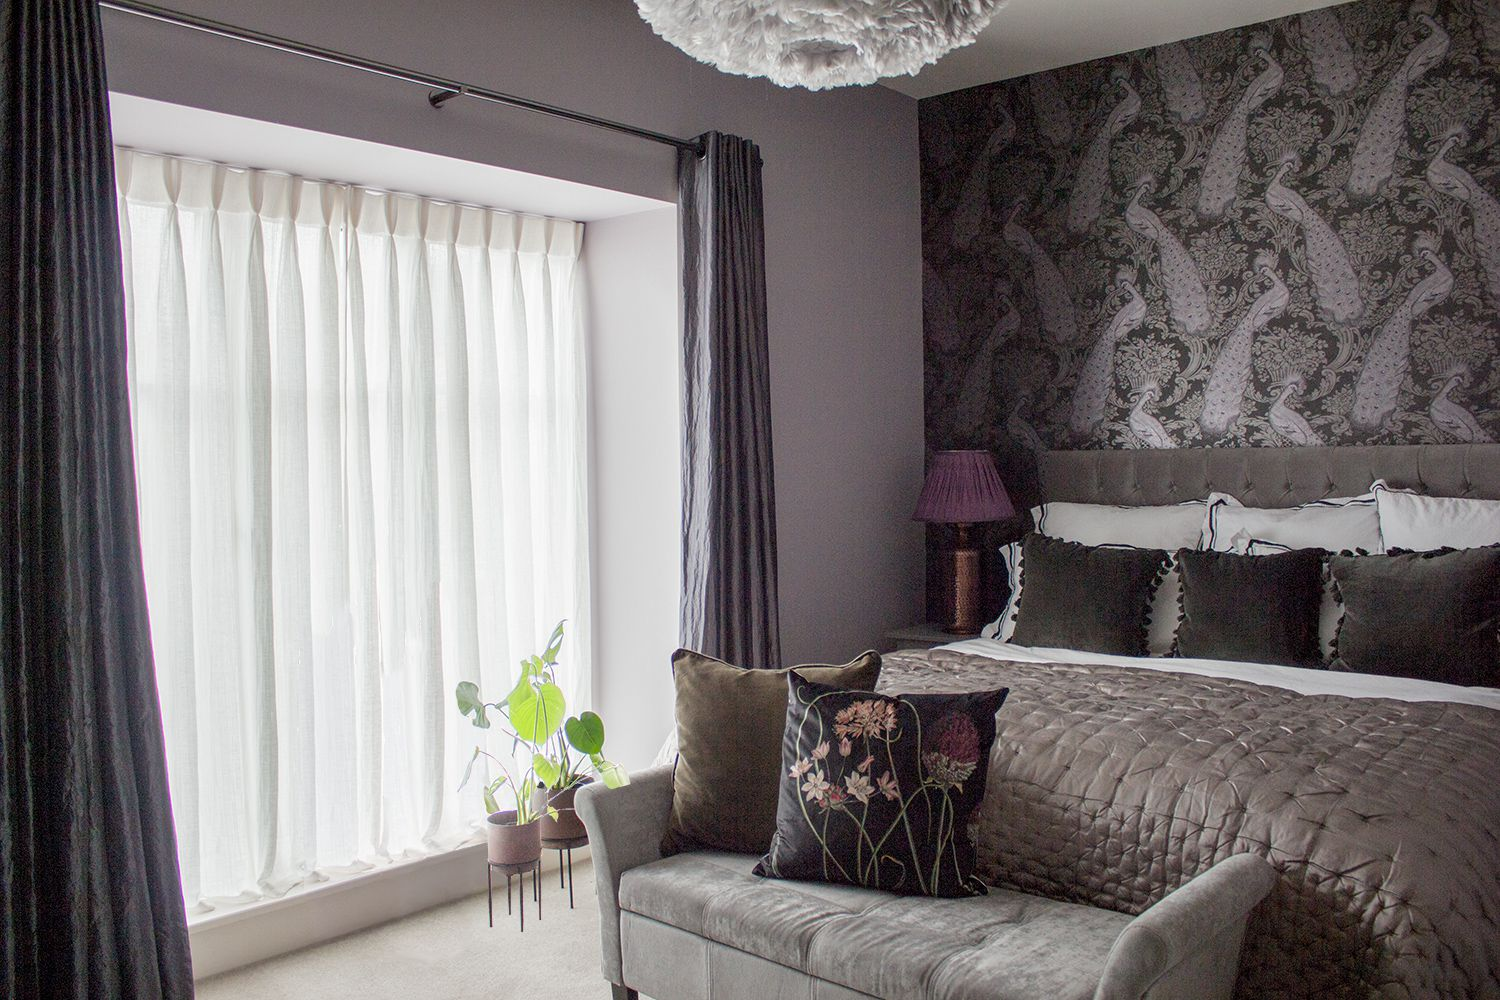 A view of the bed and peacock wallpaper behind. The windows have the original black curtains and sheer curtains added, and some plants in planters.